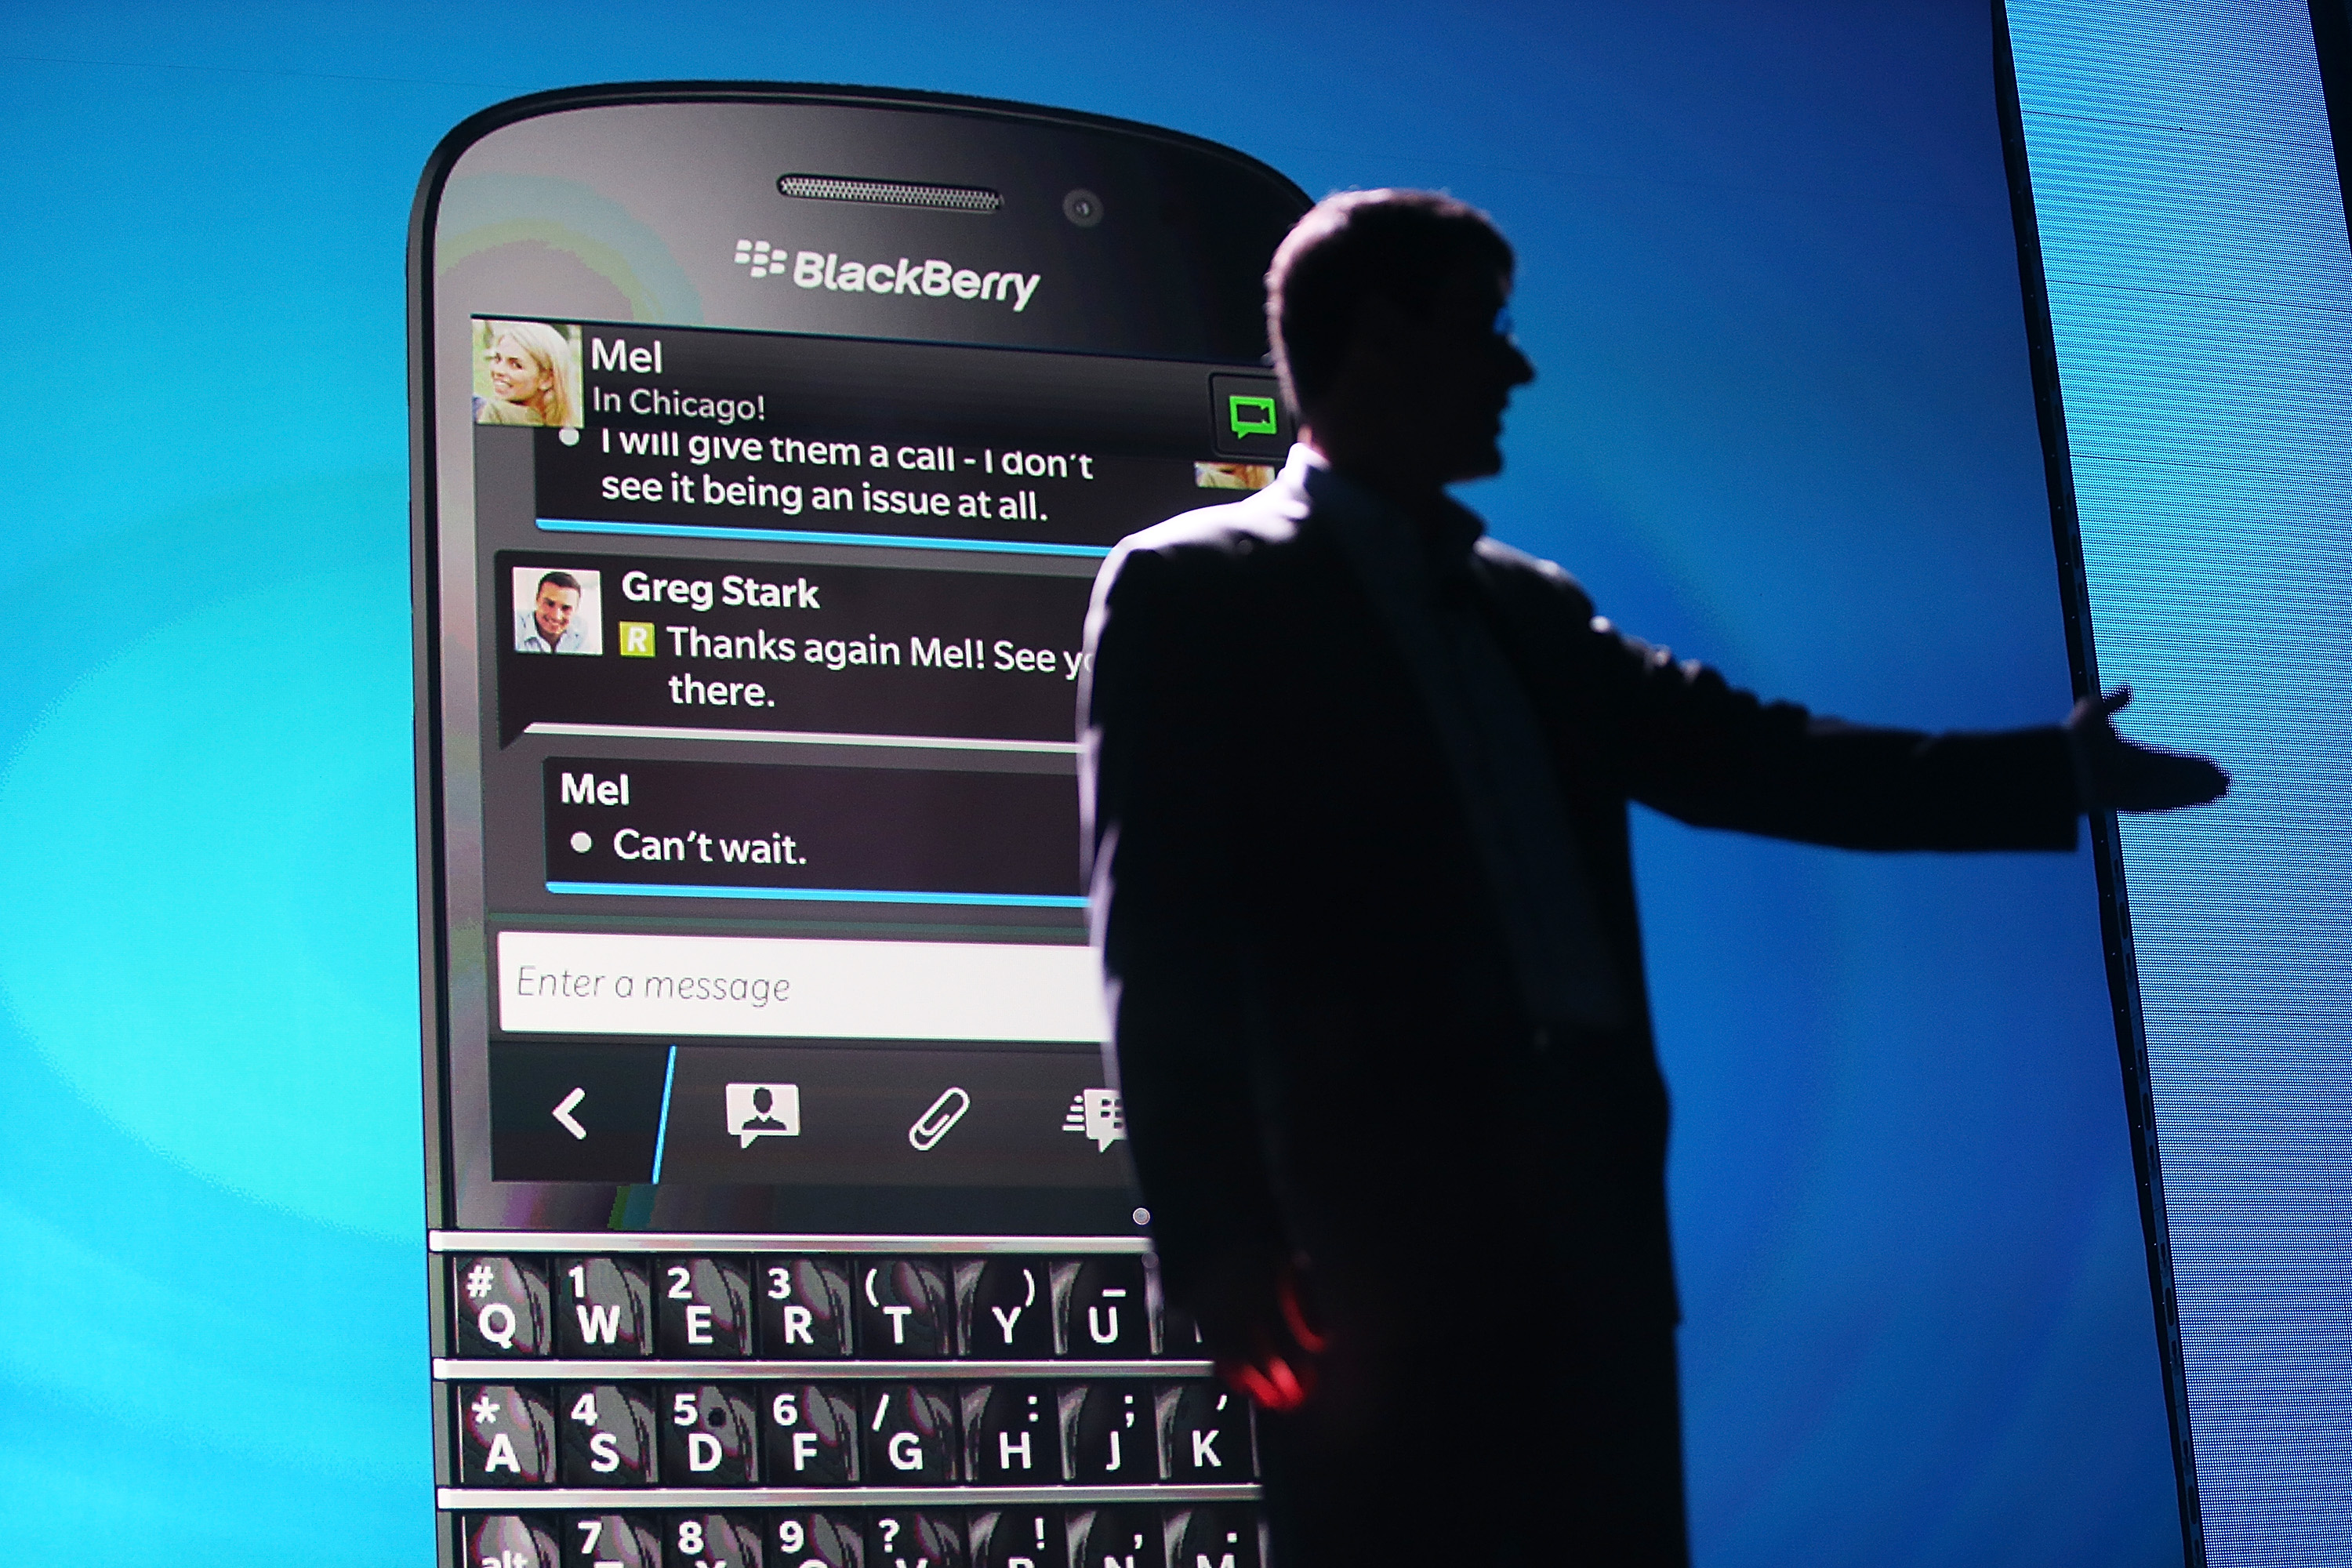 BlackBerry sues Ryan Seacrest's Typo over 'blatantly copied' iPhone keyboard case